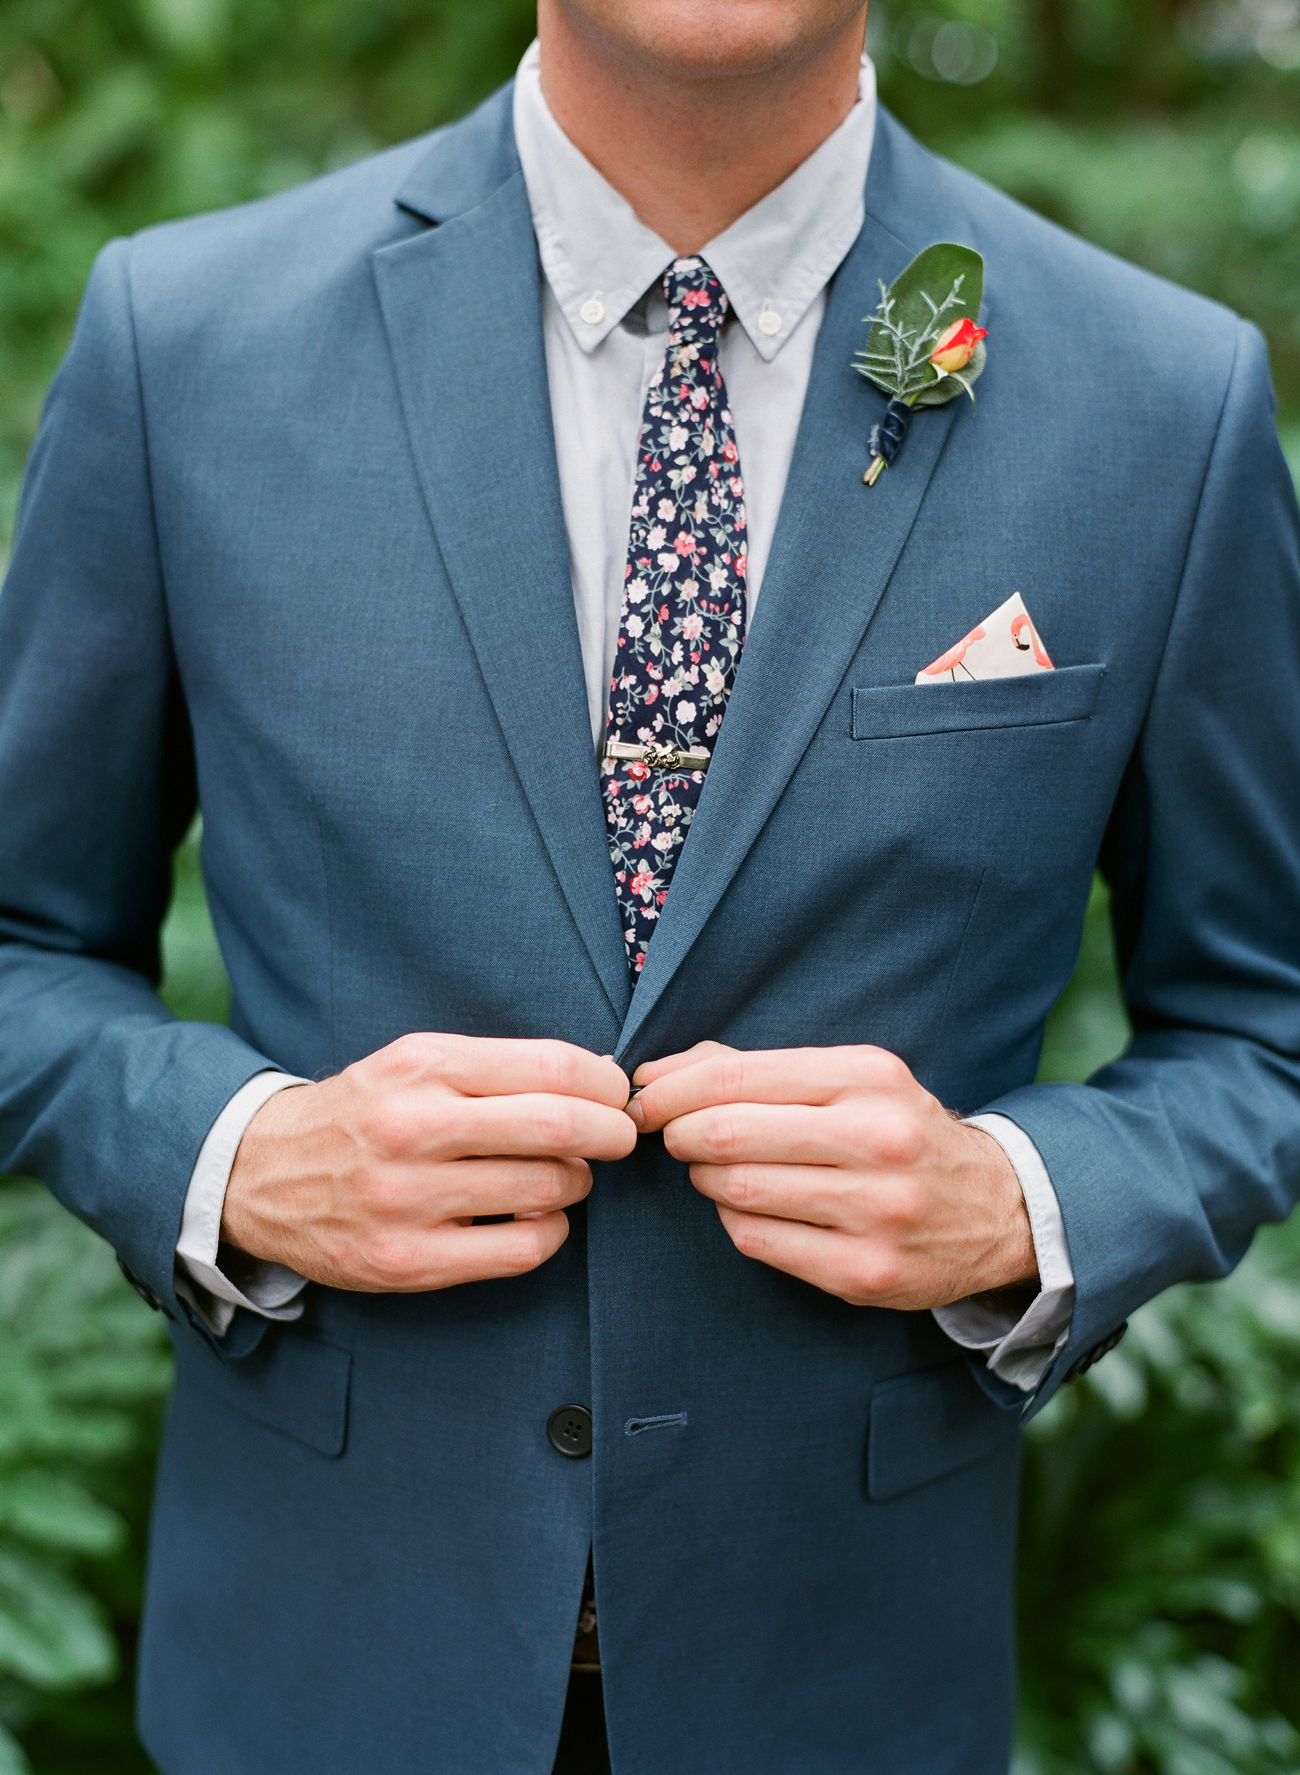 blue suit with floral tie and pocket square